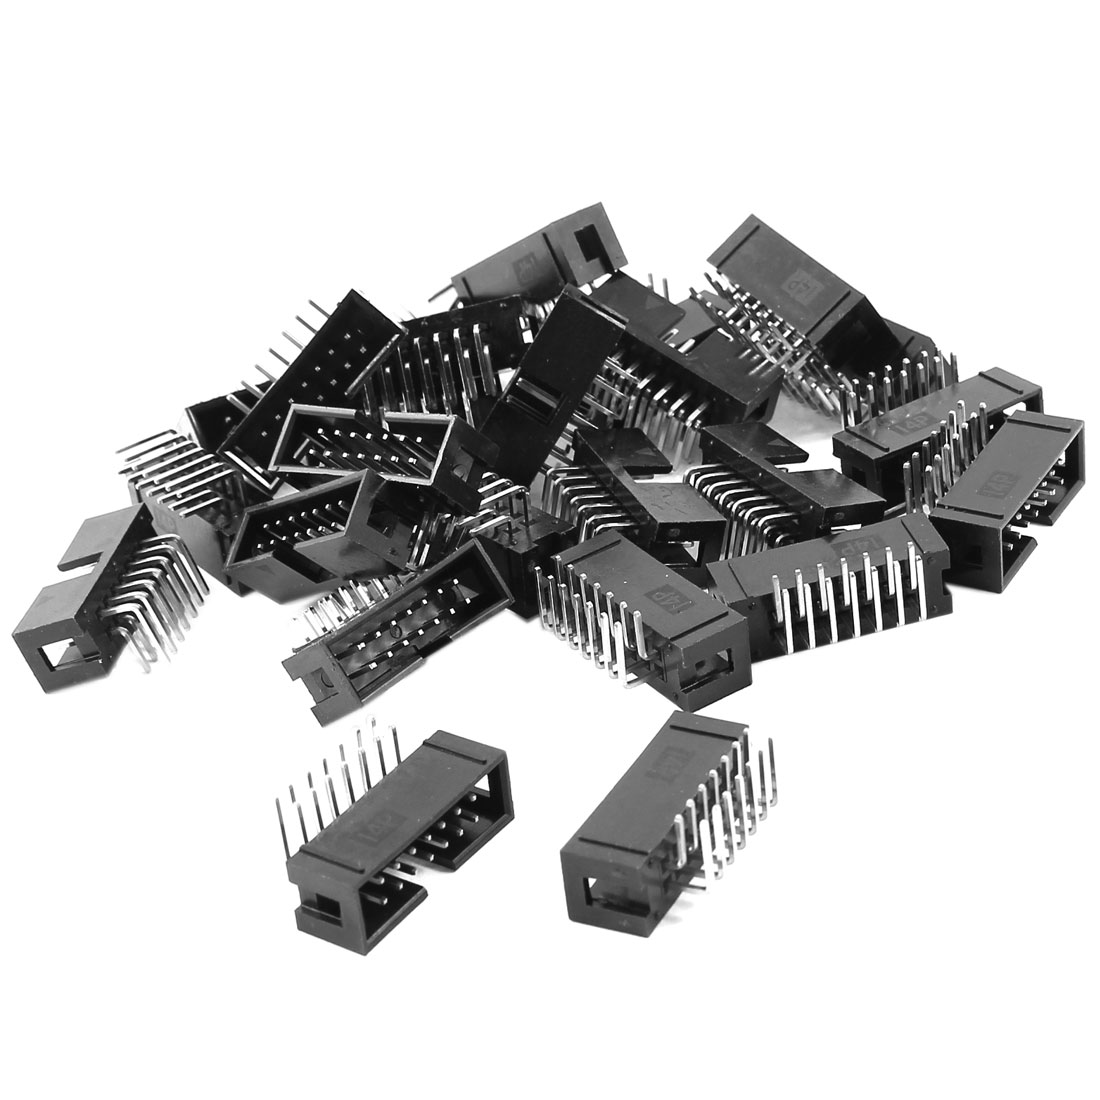 25Pcs DC3-14PL 2x7 Pins 2.54mm Pitch Right Angle Connector Pin IDC Box Headers